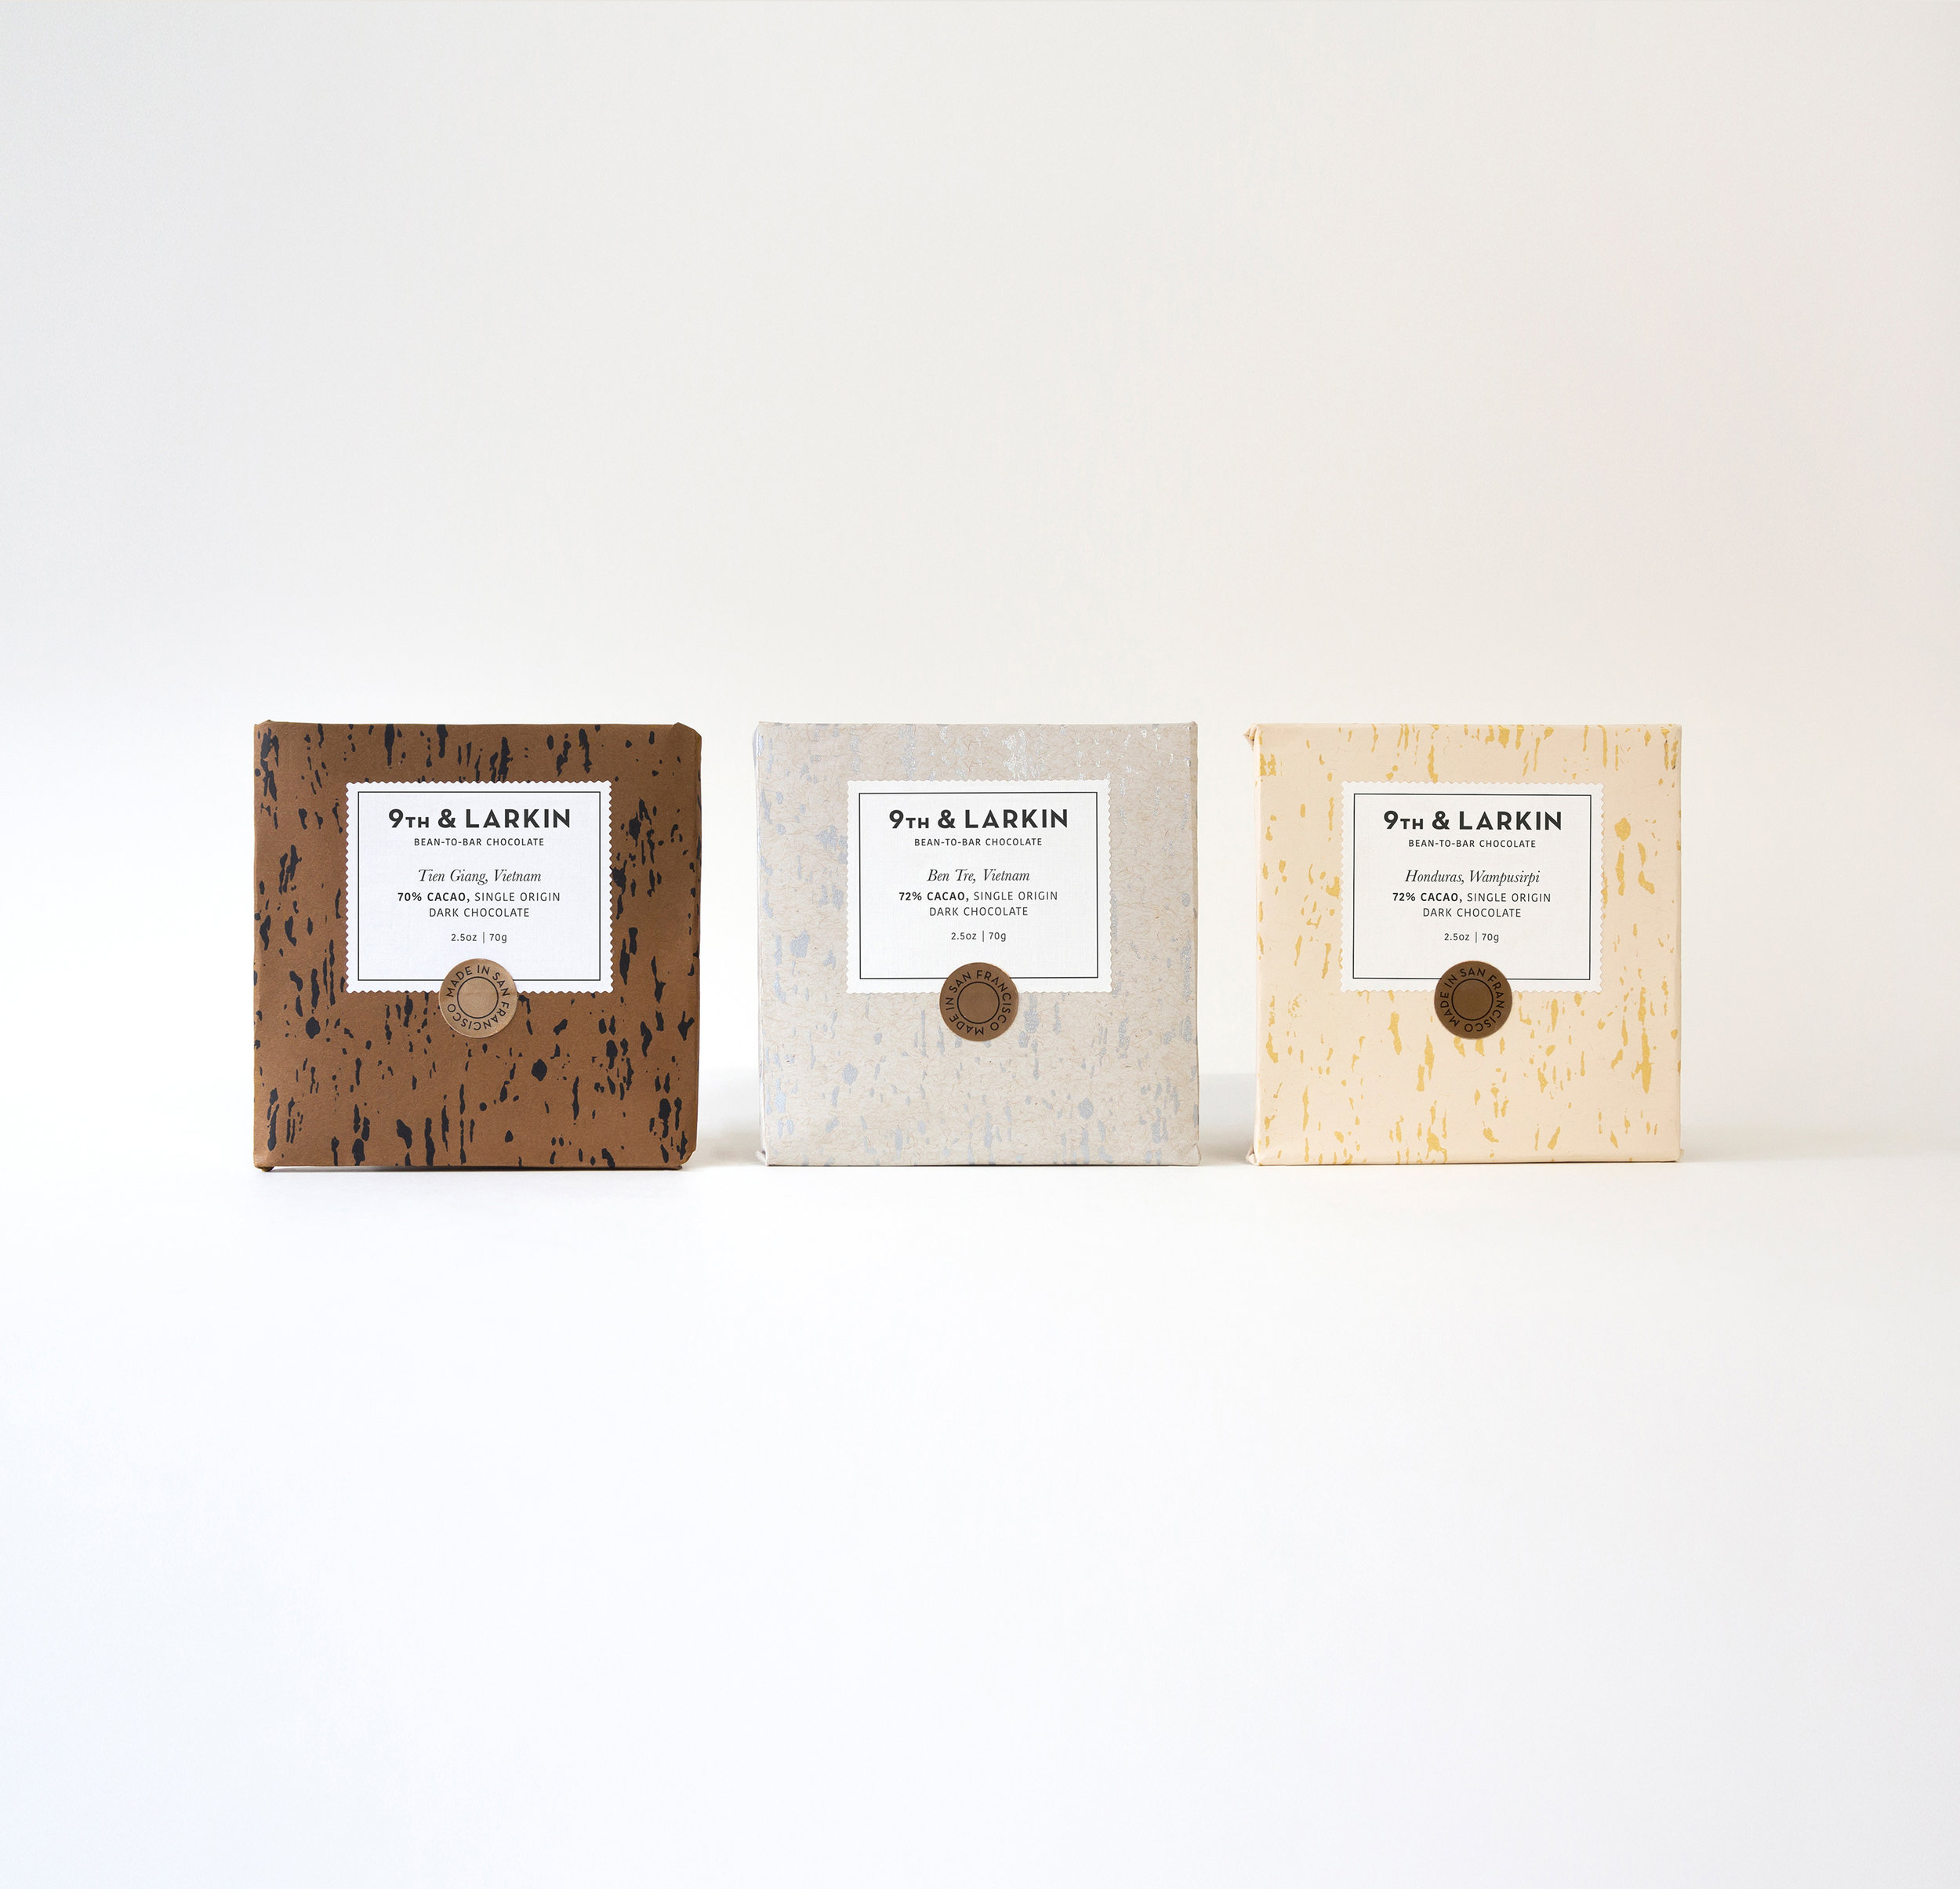 Crafted Natural Textures Printed Packaging Design for Chocolate / World Brand & Packaging Design Society